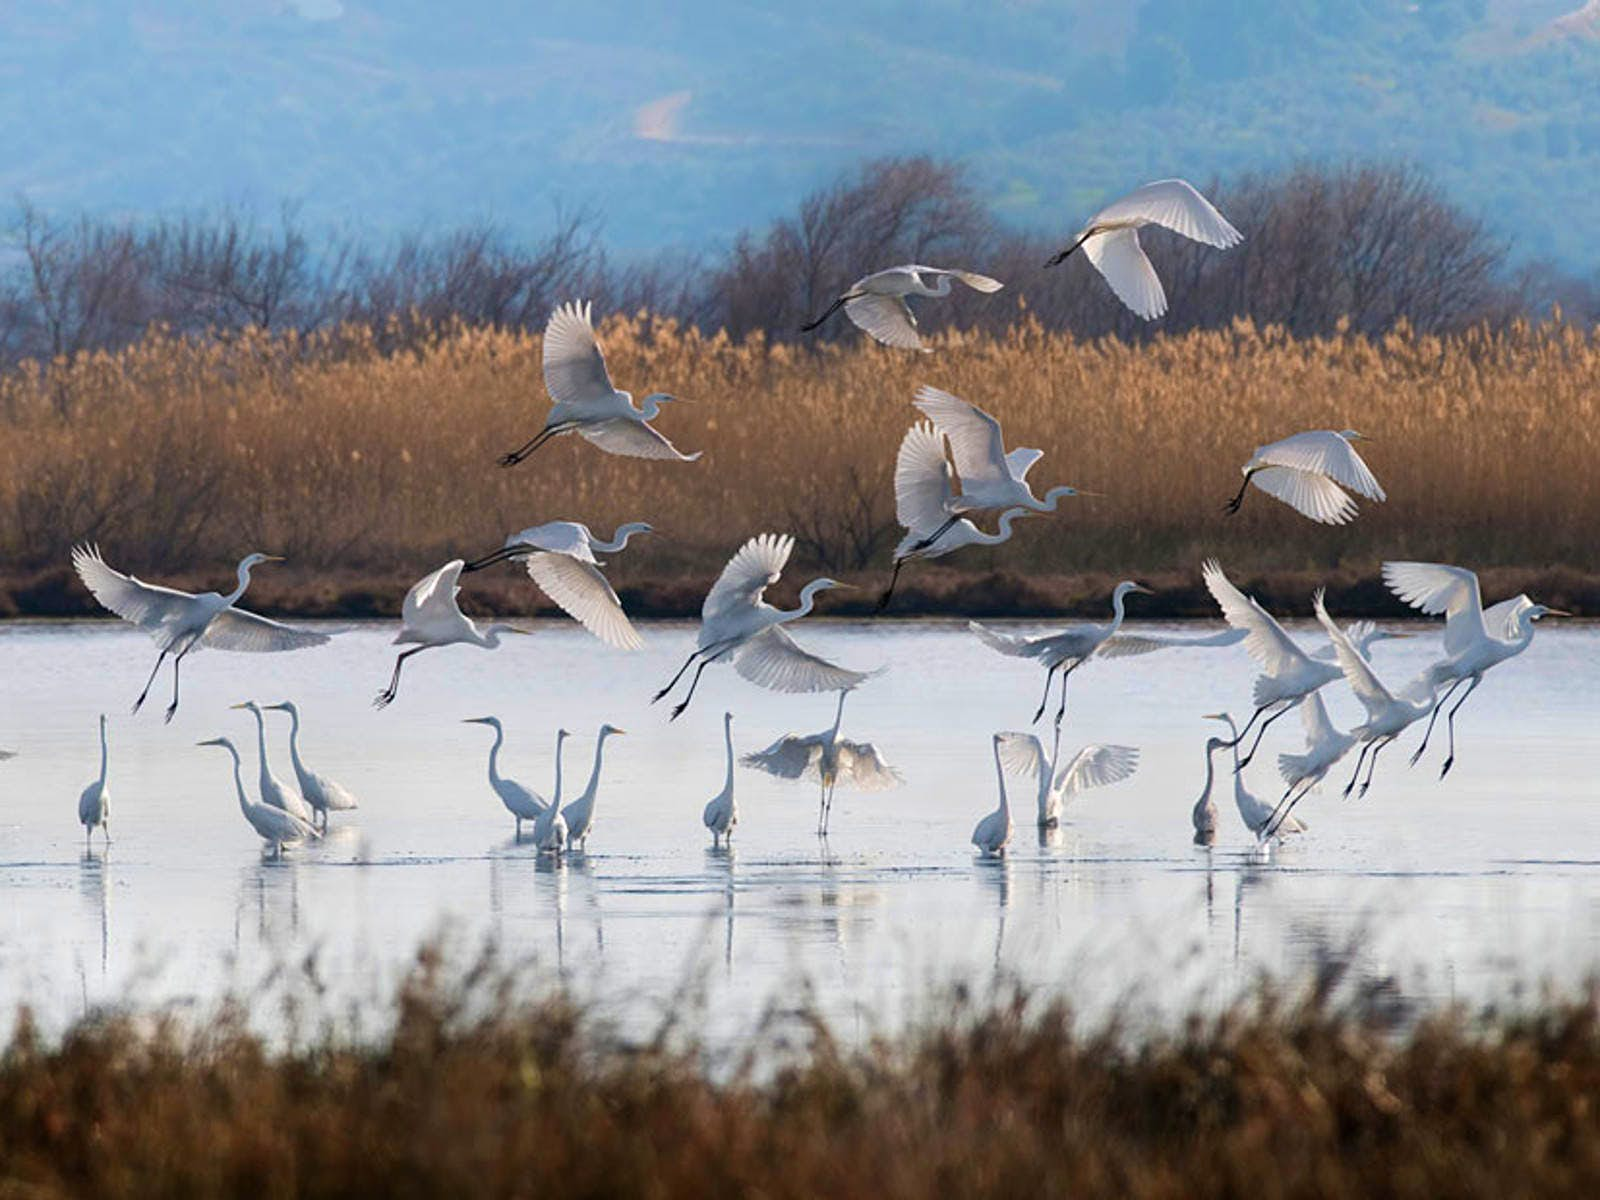 A flock of birds in the Messinia region of the Peloponnese @ courtesy of costanavarino.com